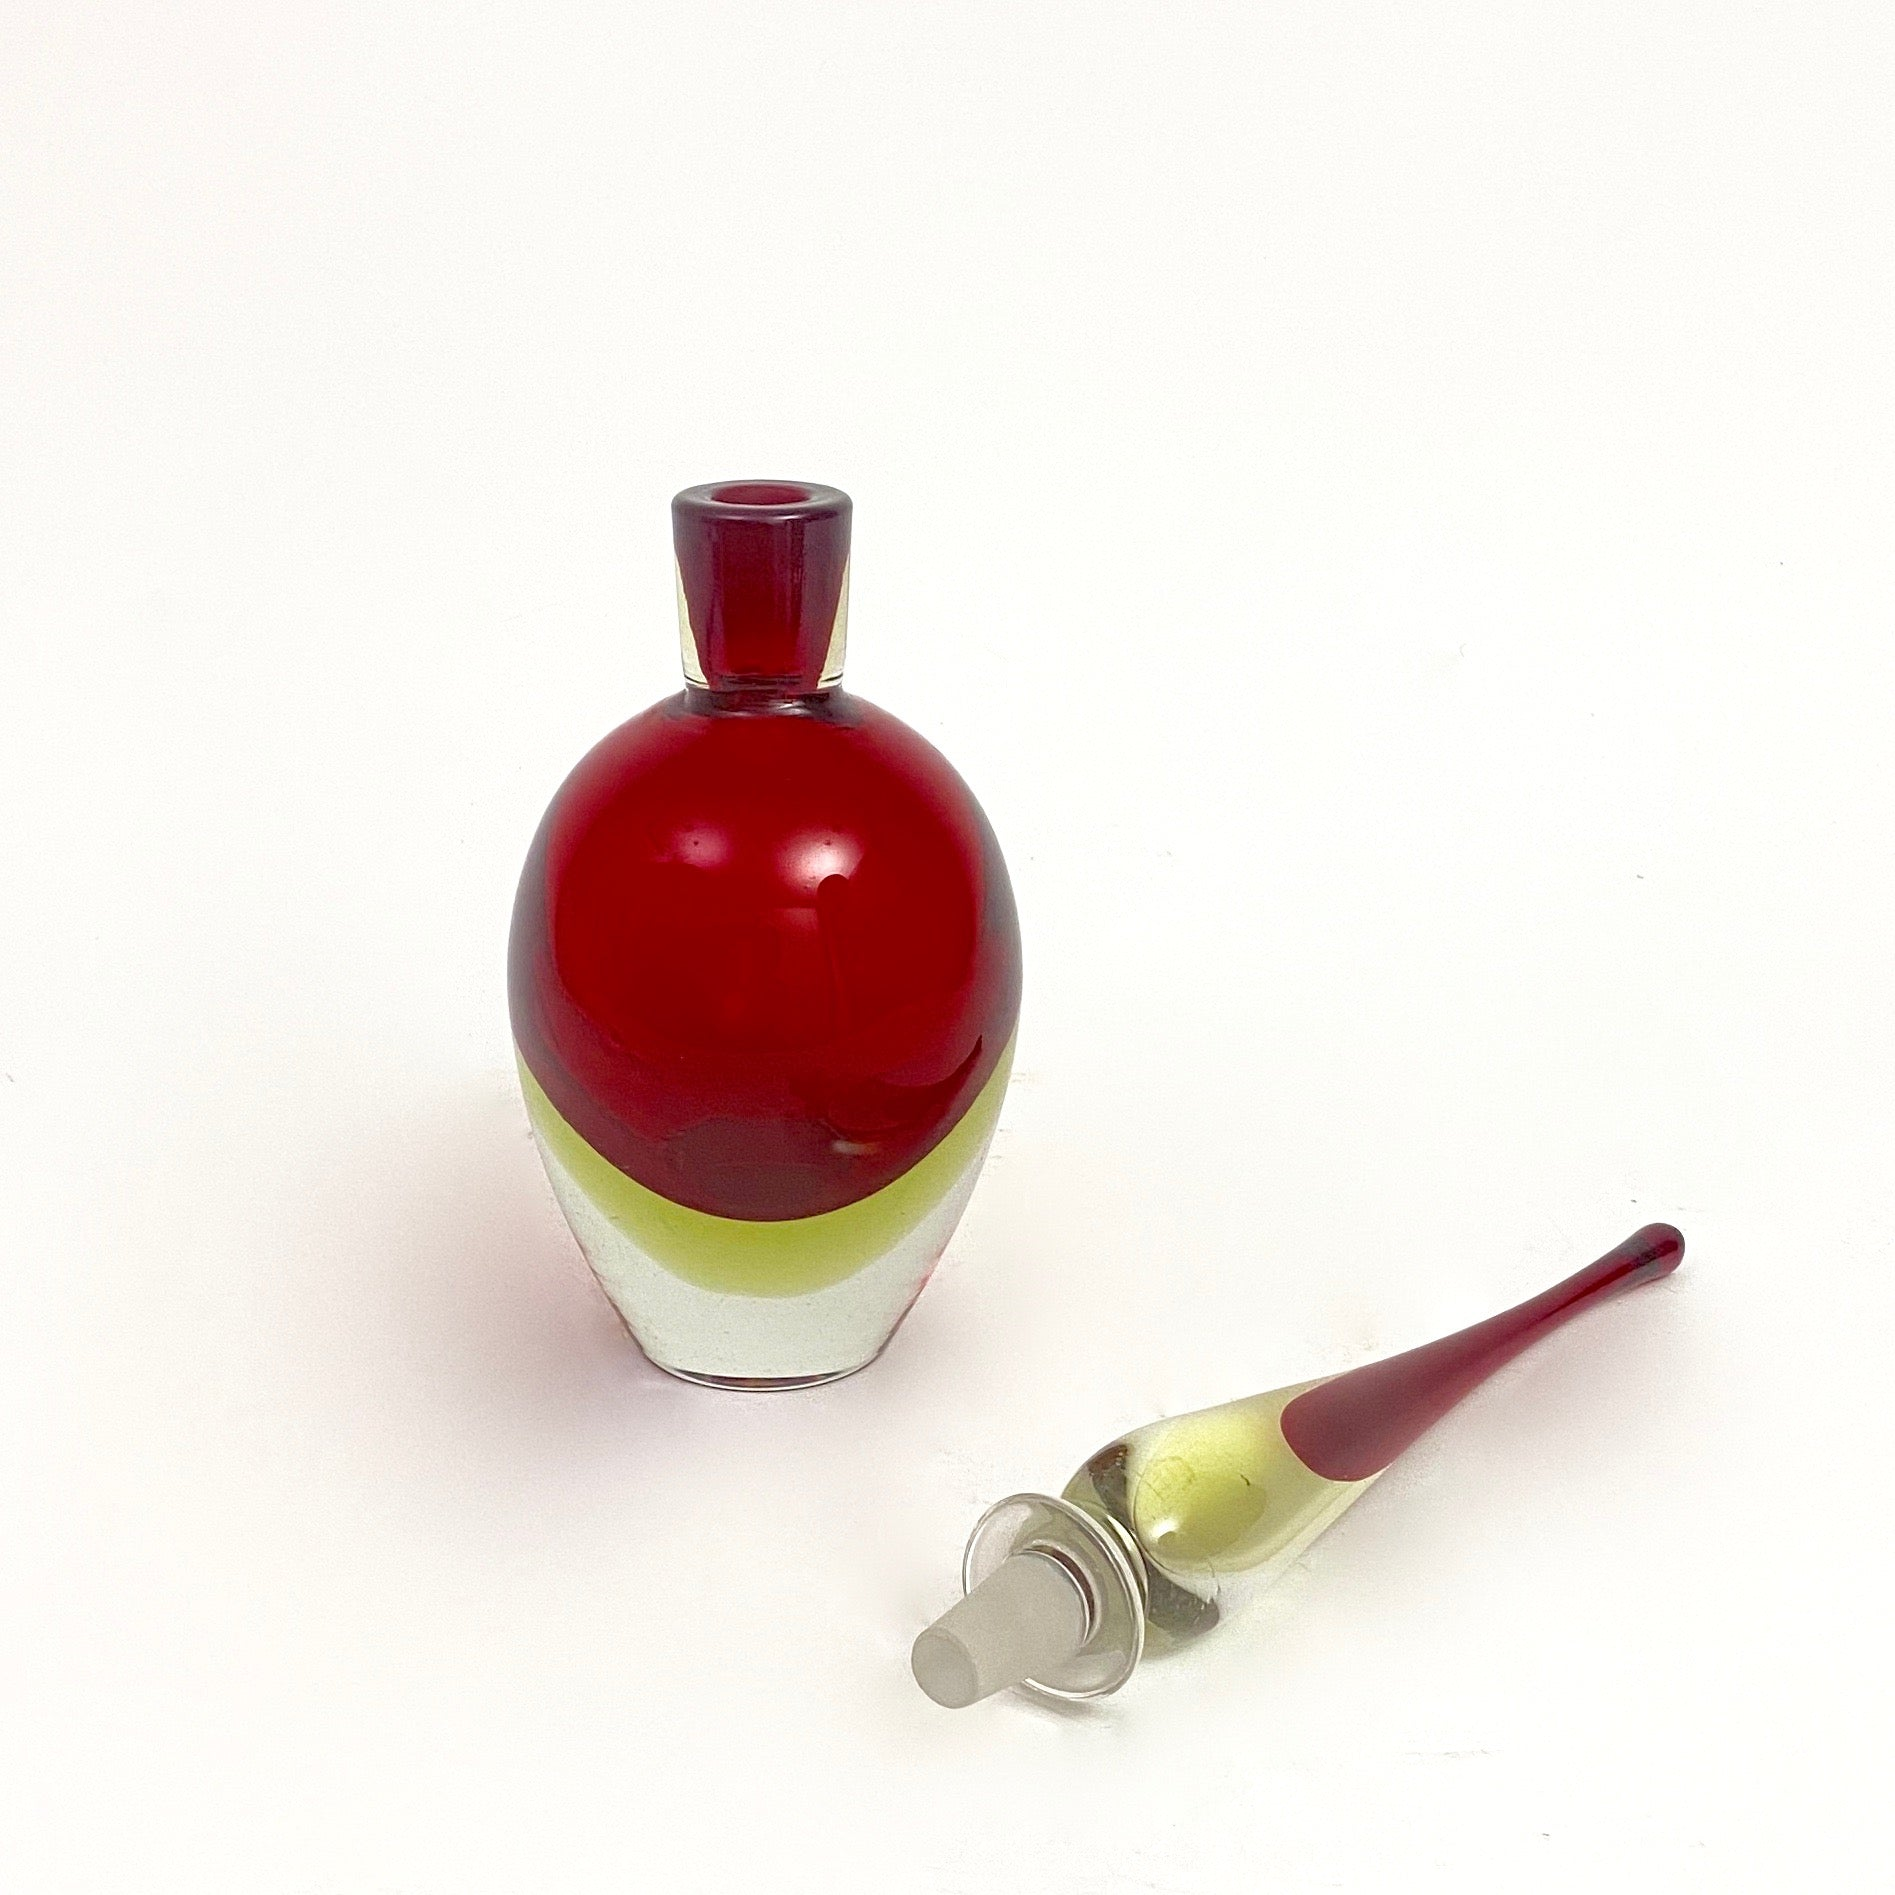 Elegant Murano glass decanter in the manner of Flavio poli.